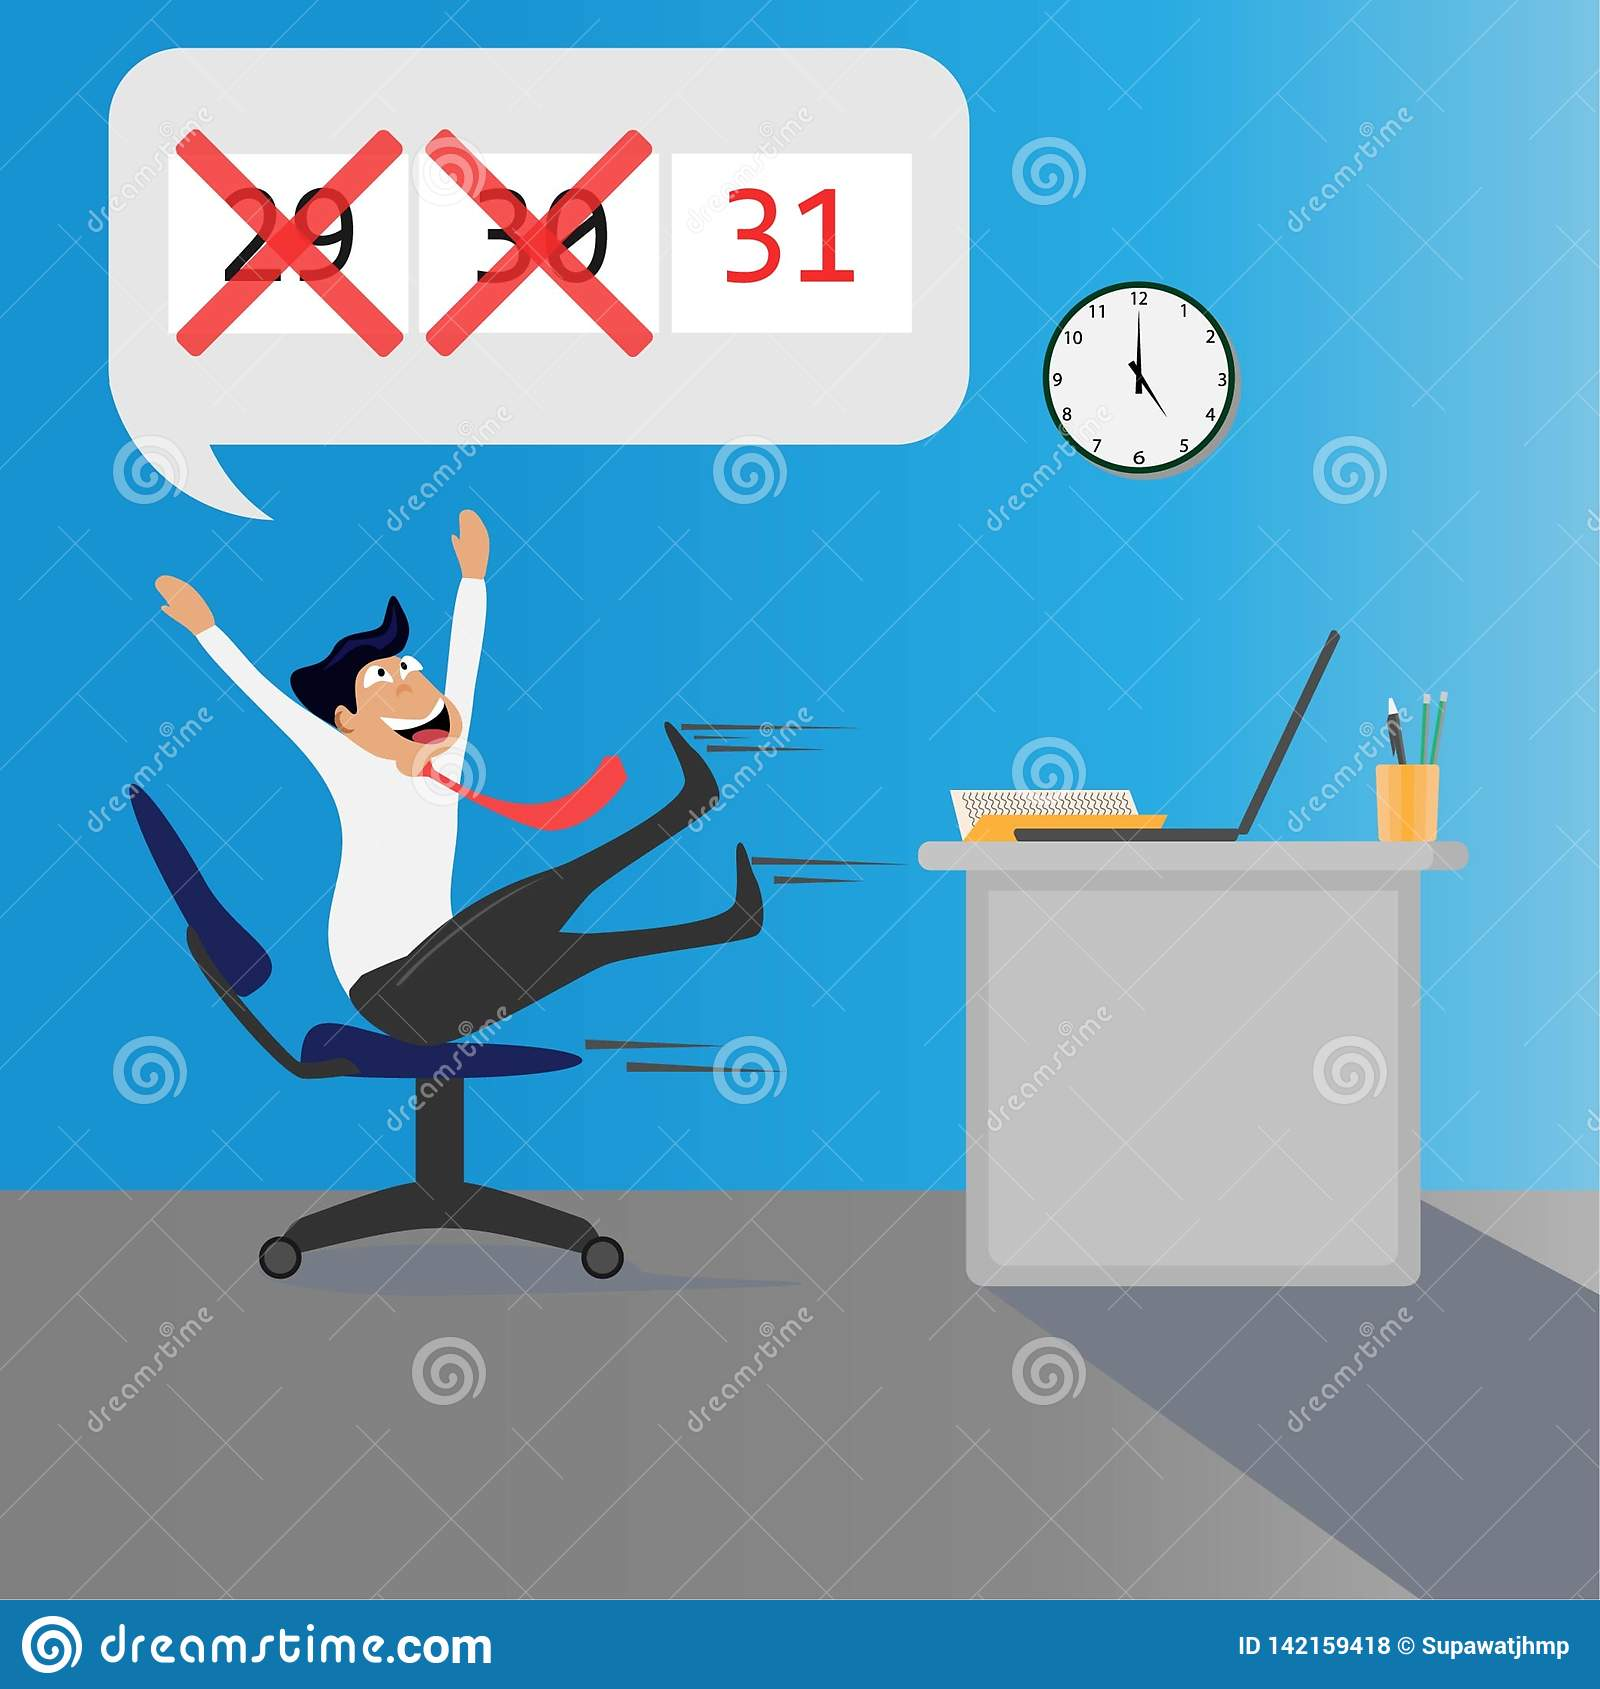 Company staff happy on the last day of the month